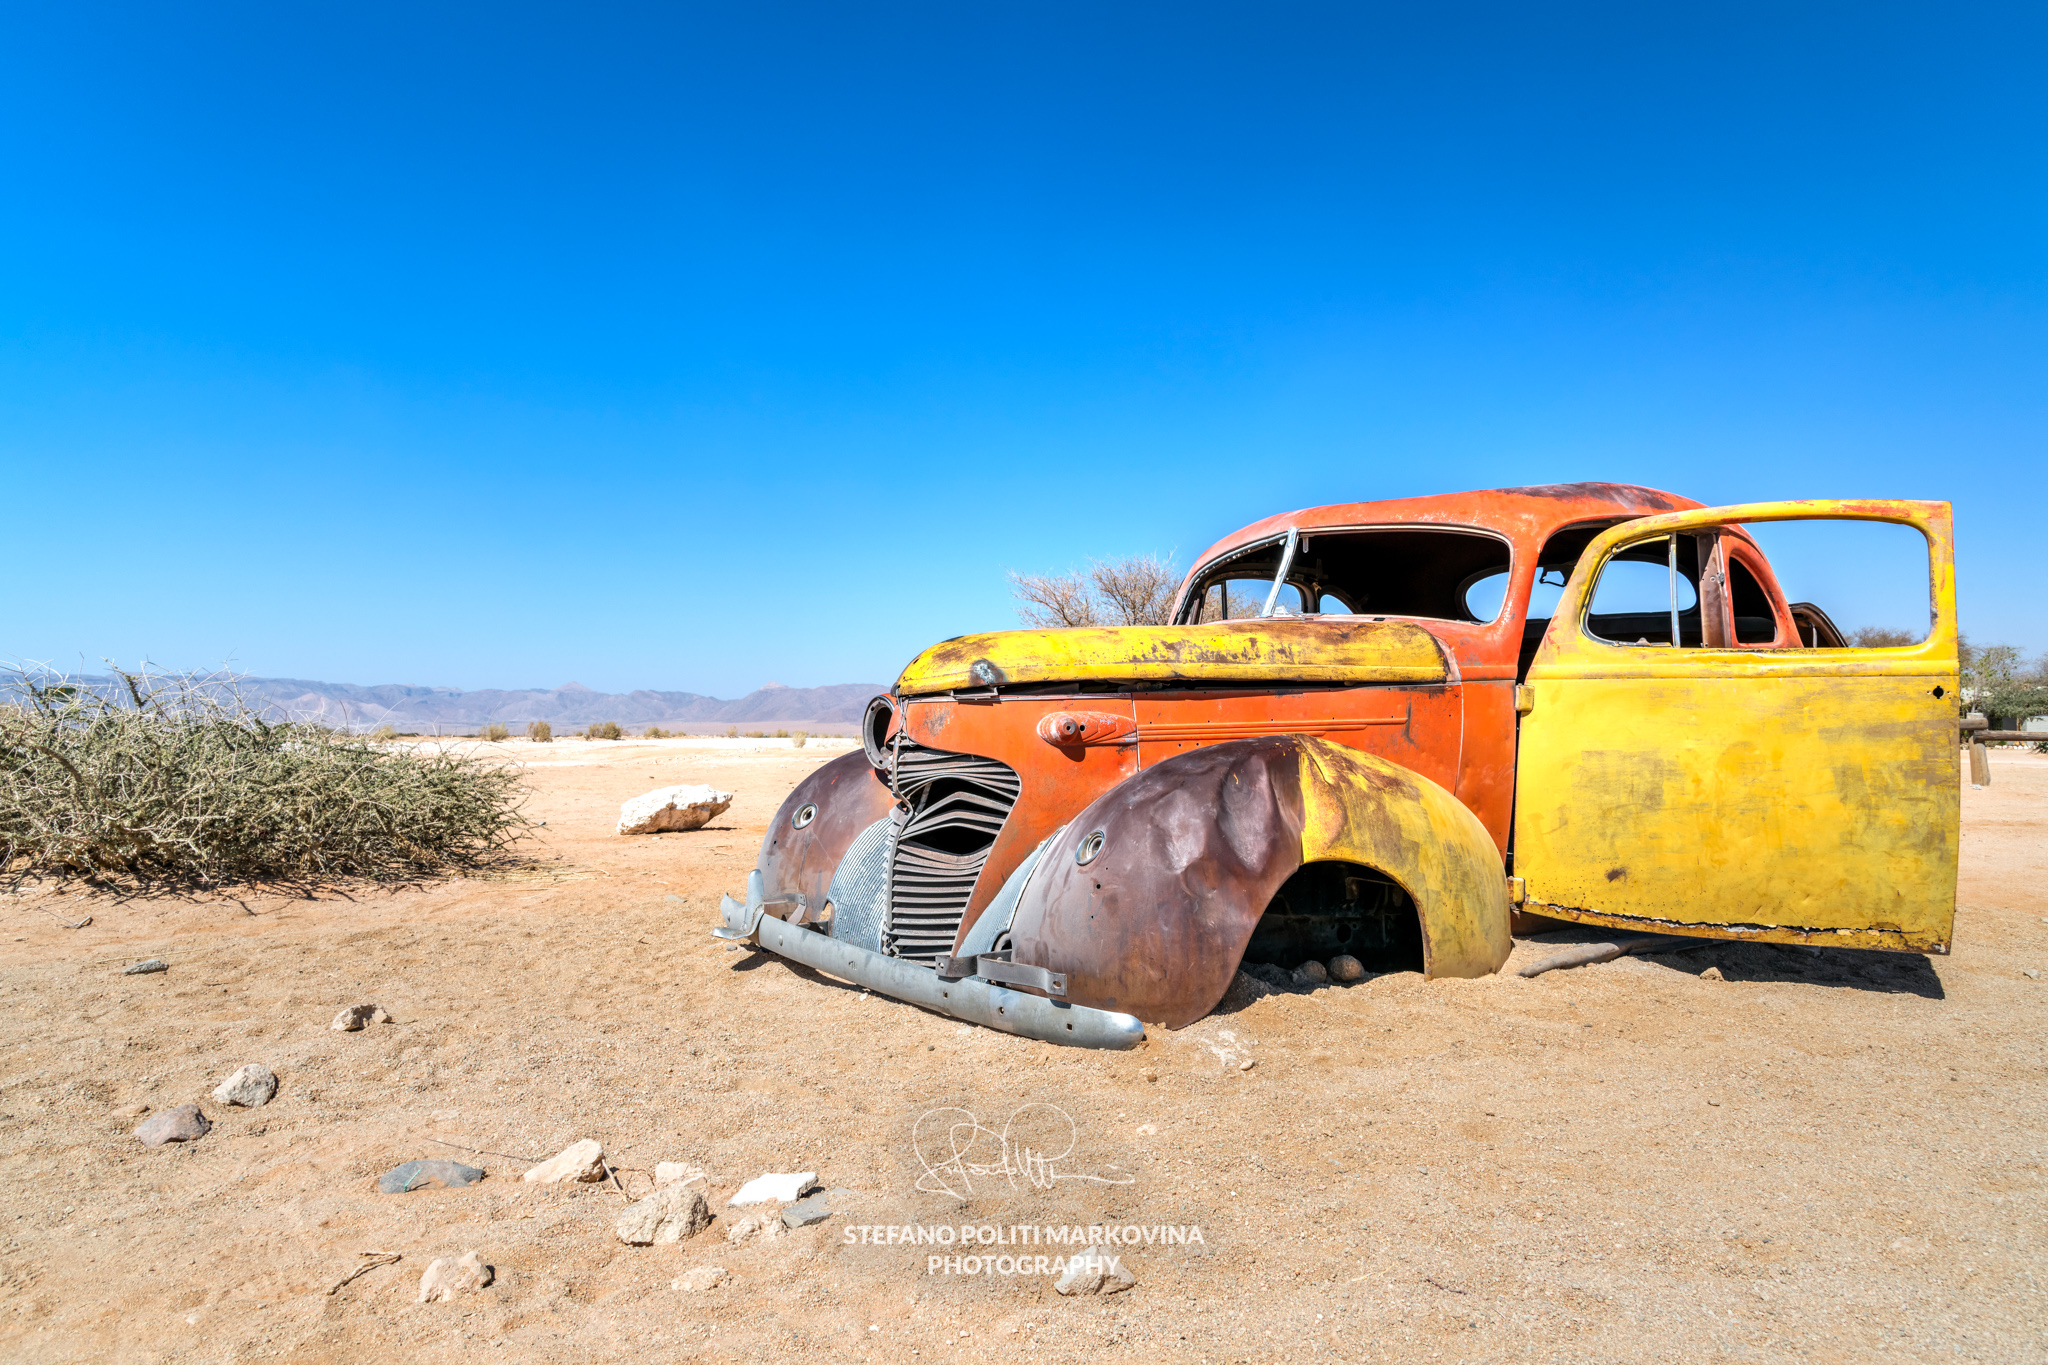 Photography tips for Namibia